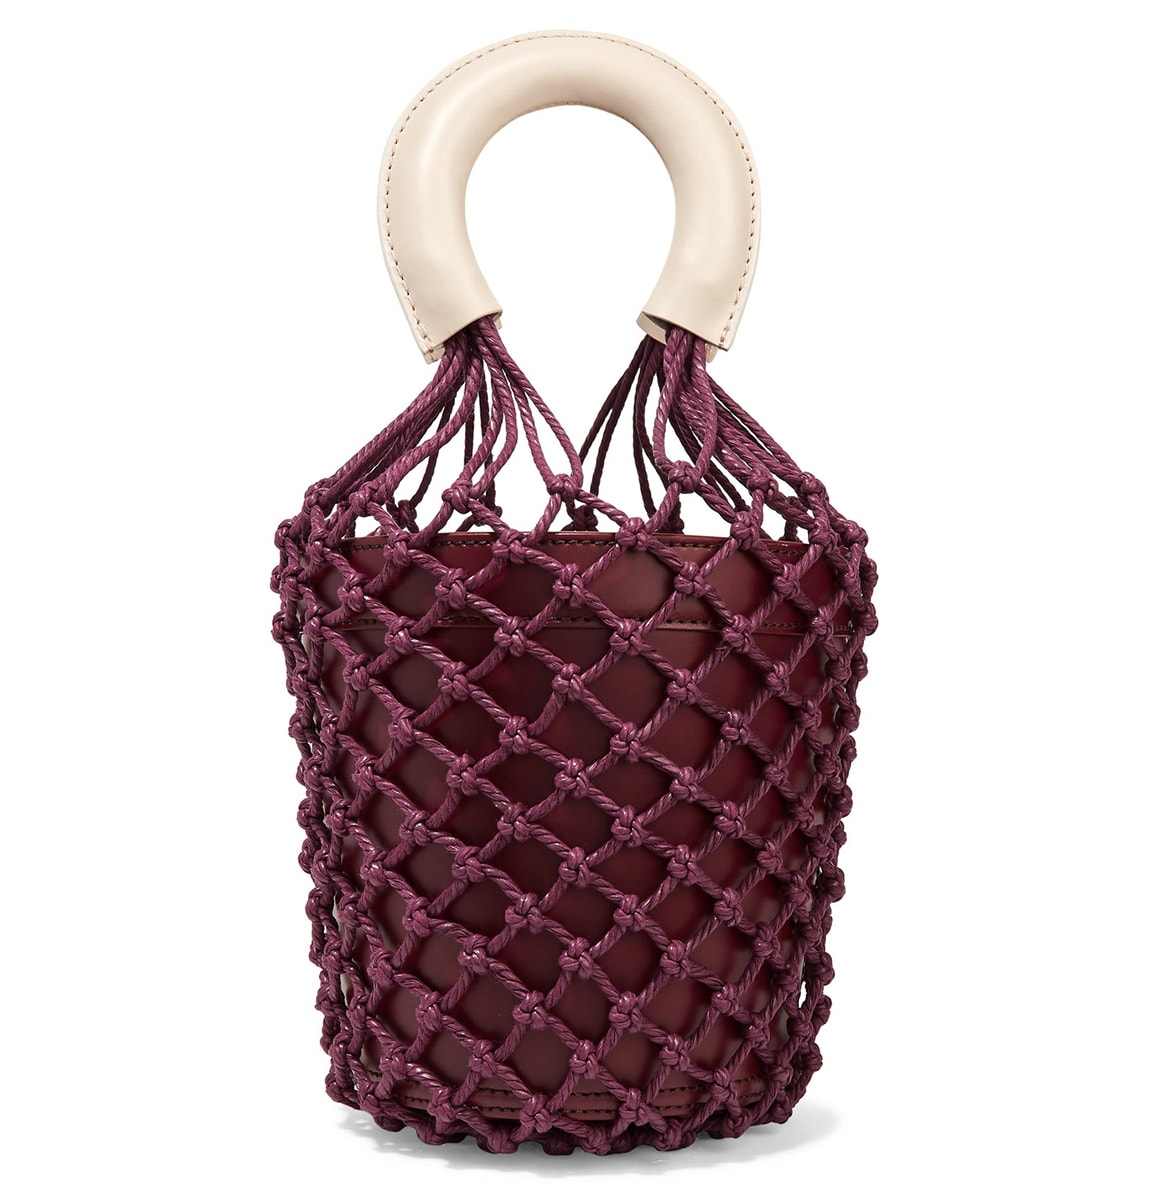 Staud Moreau Leather and Macrame Bucket Bag